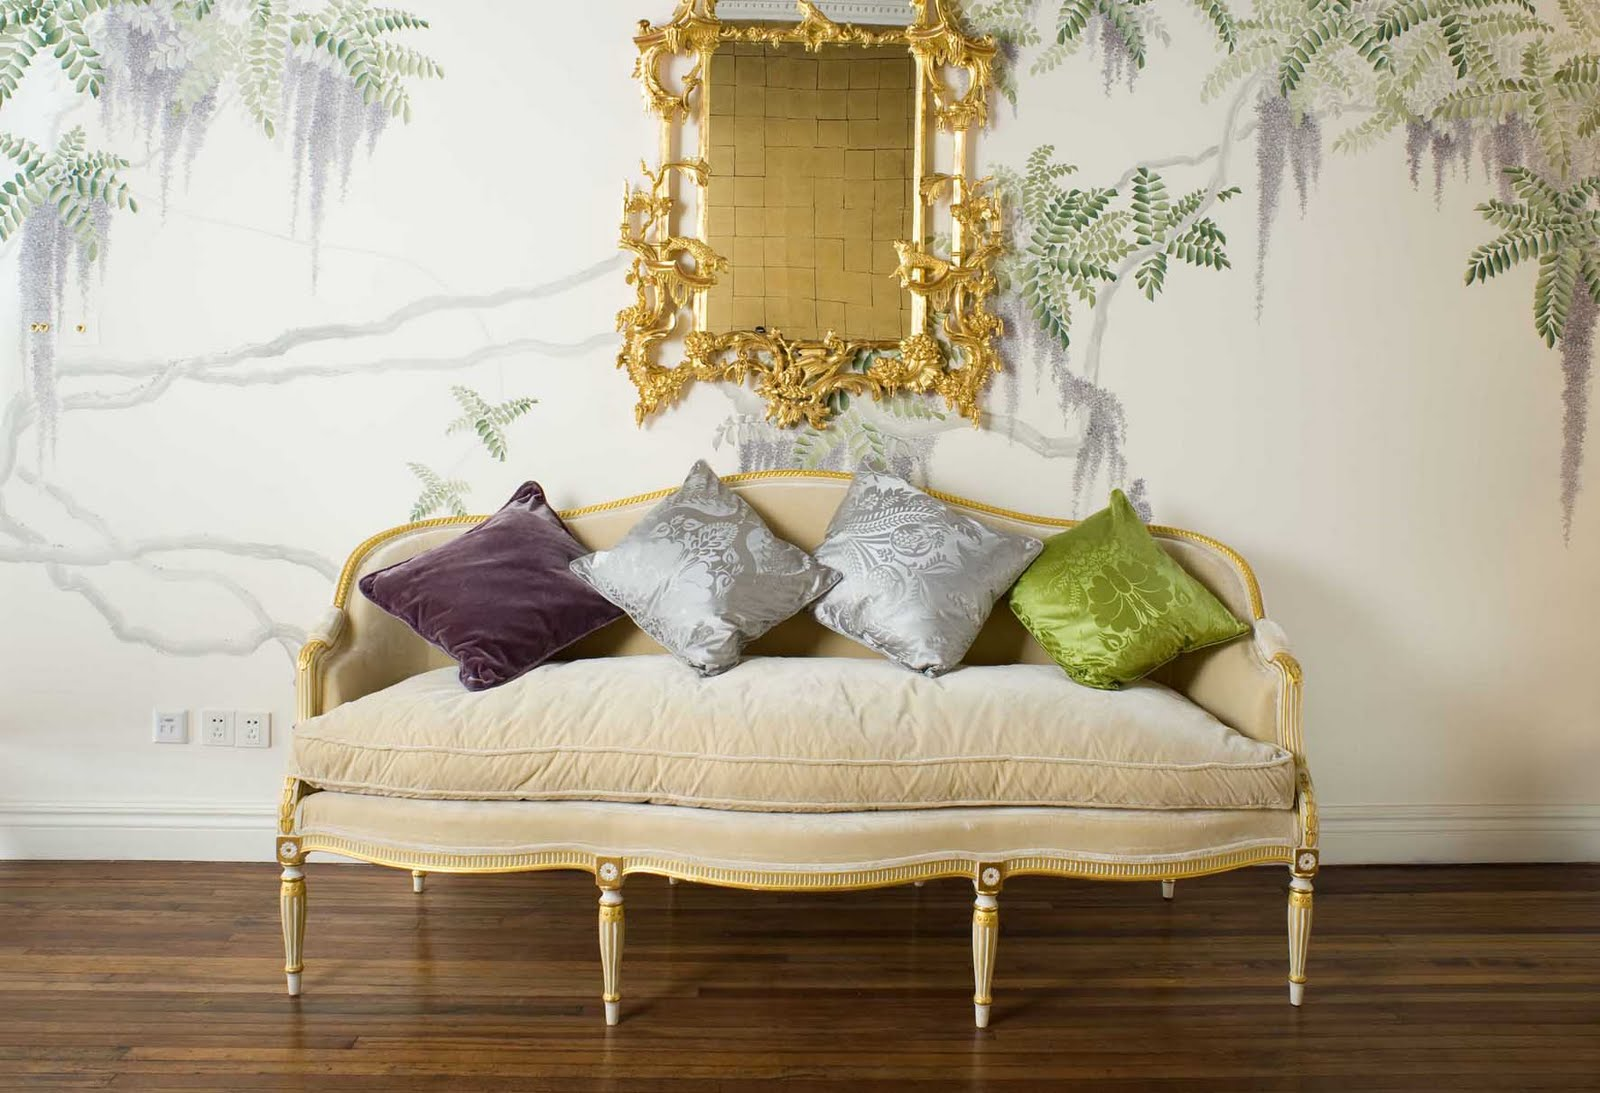 http://3.bp.blogspot.com/-eI1F-VHgRPw/T_RUaPtfXdI/AAAAAAAAMKs/7PT7k-TU_AQ/s1600/pretty-wallpaper-french-settee-pillows-gold-mirror-eclectic-home-decor-ideas-de-gournay1.jpg